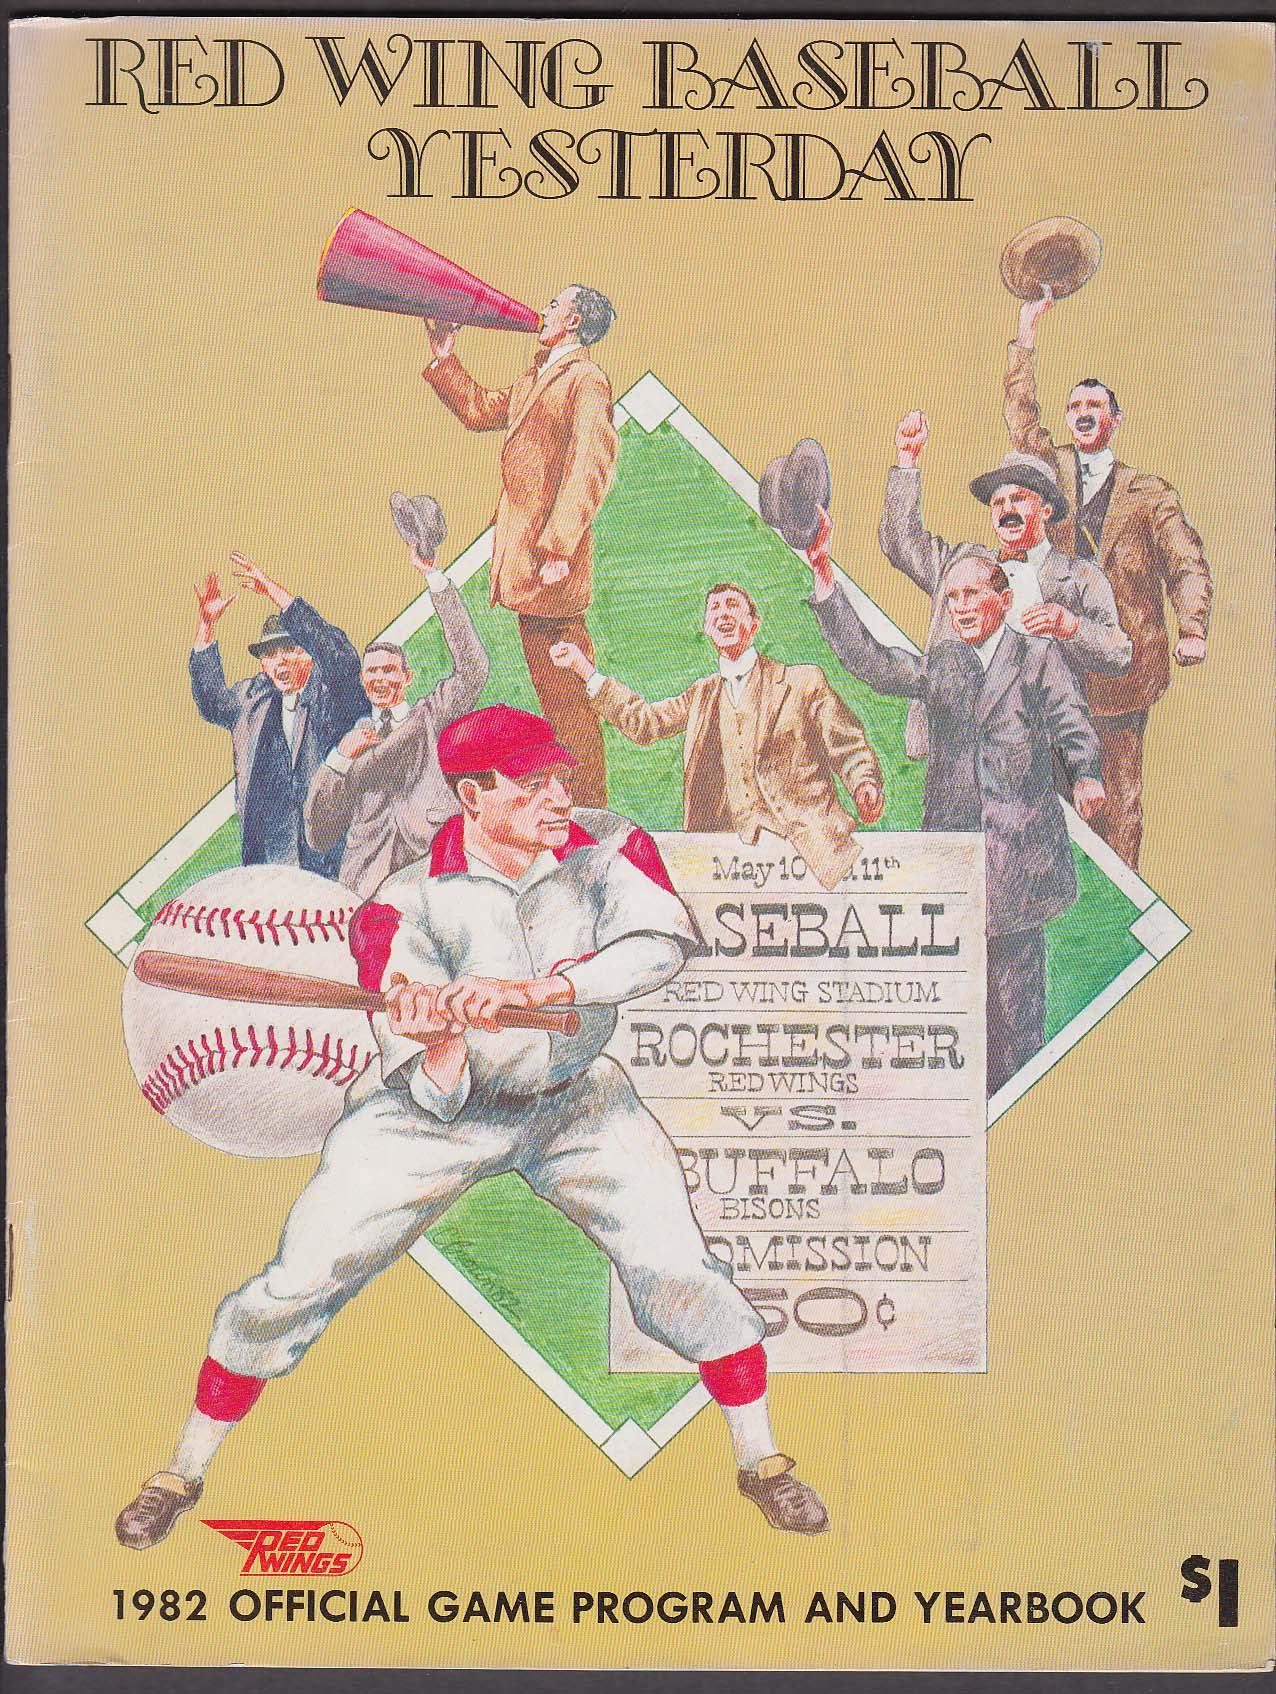 1982 Rochester Red Wings Official Program & Yearbook 1982